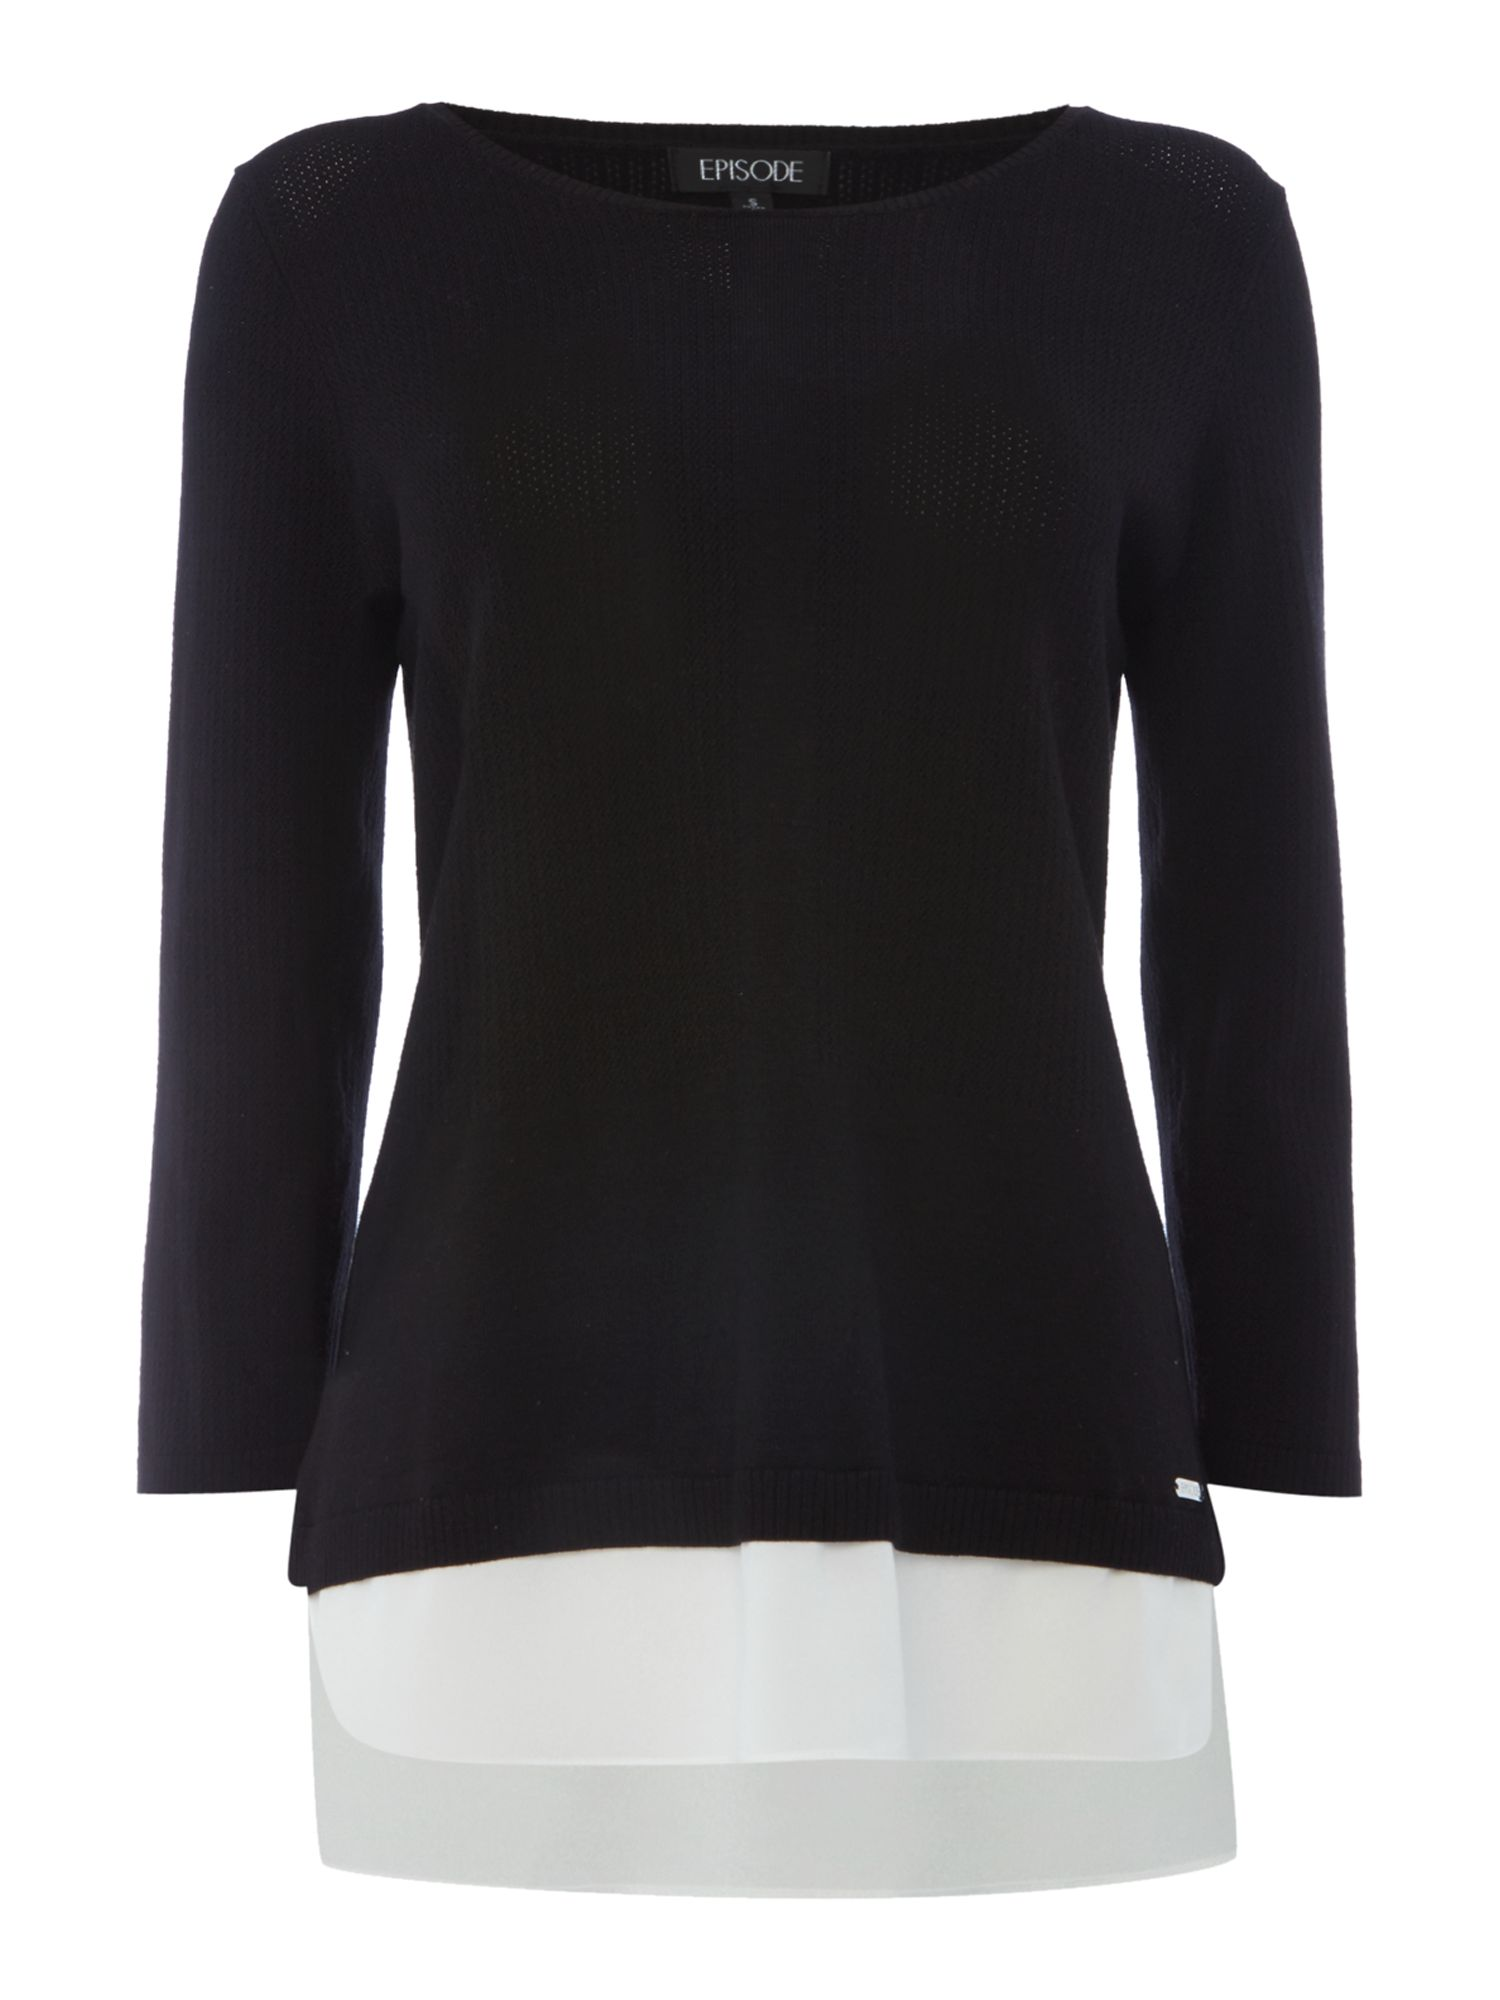 Episode Episode Lightweight knit jumper with layering, Black